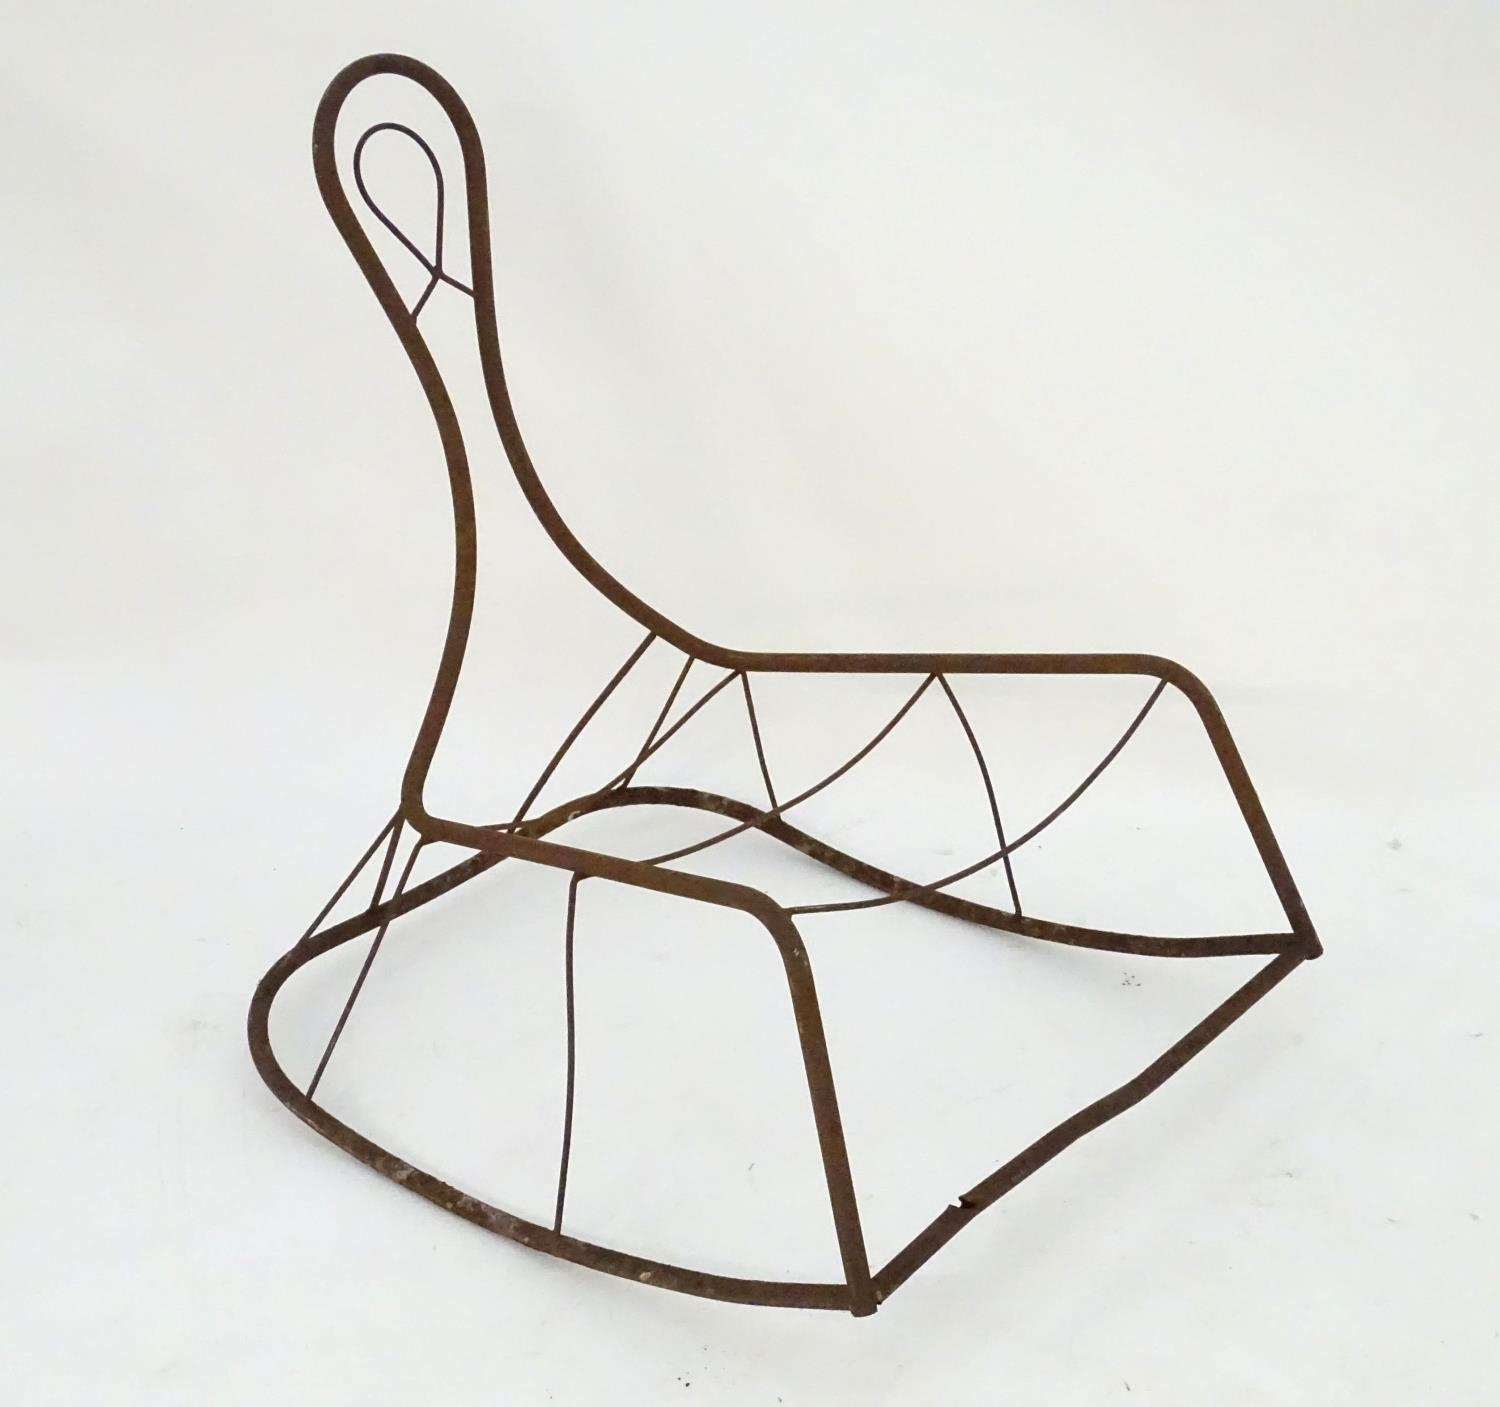 Garden & Architectural, Salvage: a mid-20thC metal rocking chair frame, suitable for use as a - Image 5 of 6